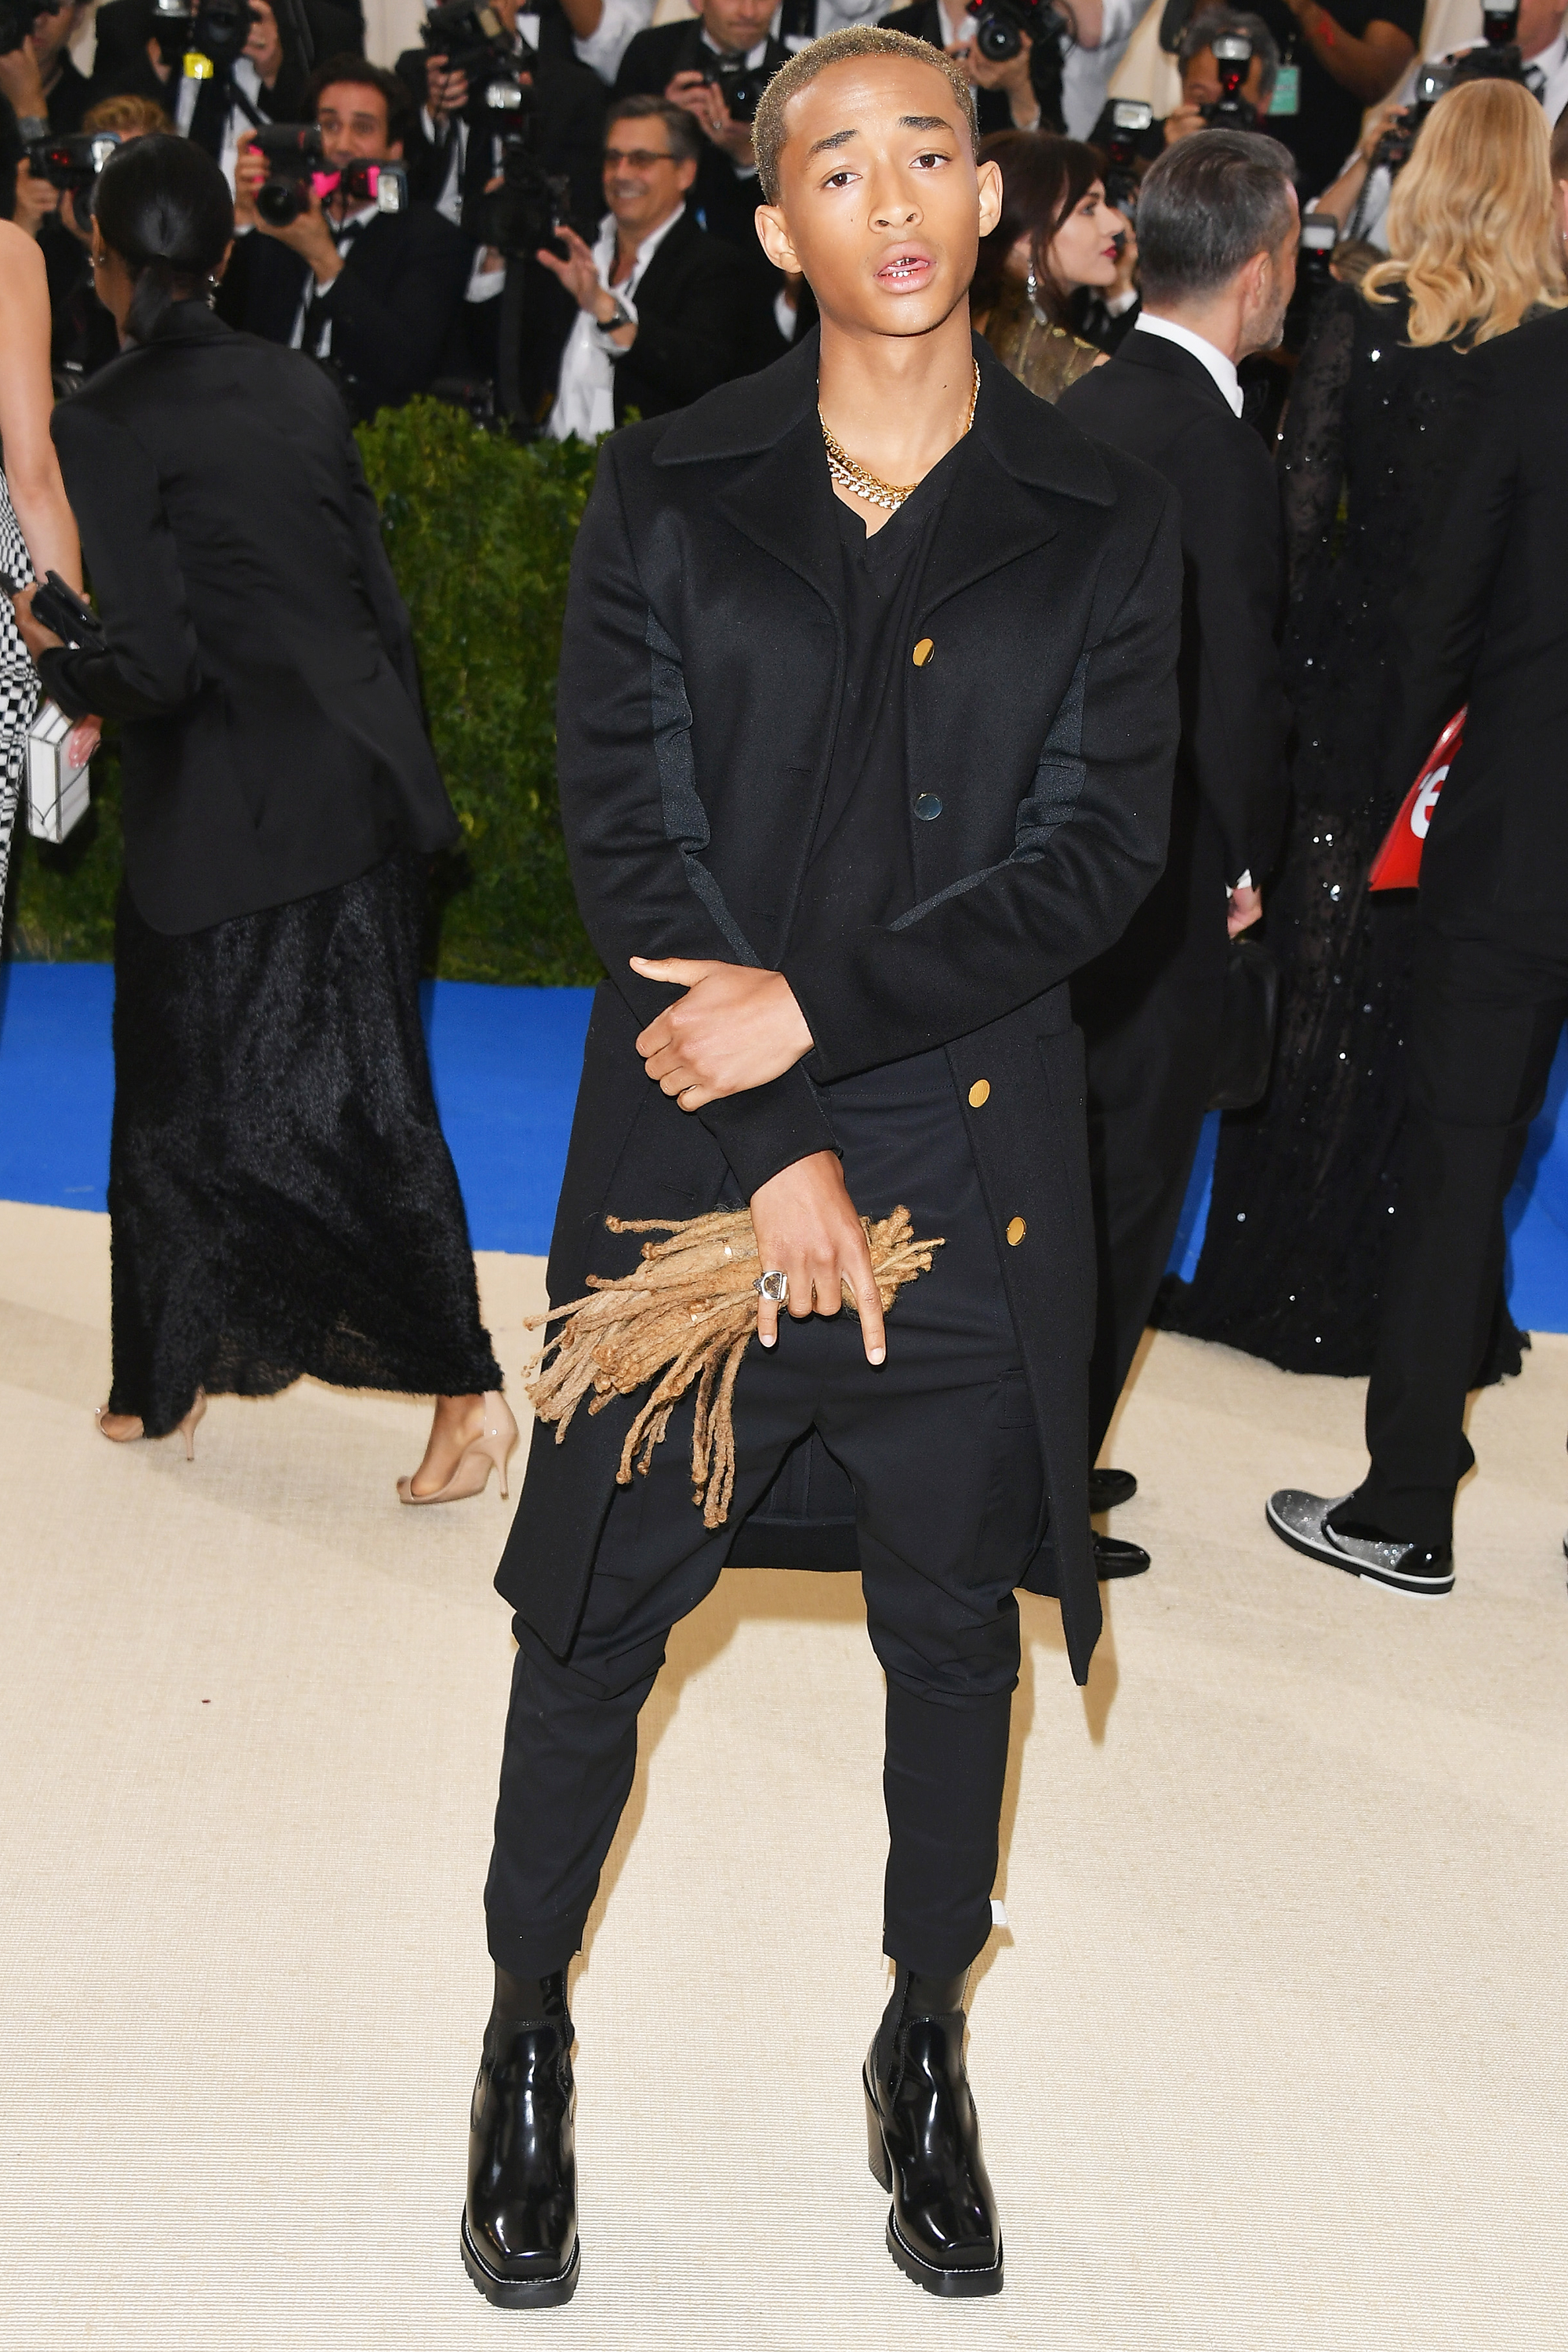 Jaden Smith attends The Metropolitan Museum of Art's Costume Institute benefit gala celebrating the opening of the Rei Kawakubo/Comme des Garçons: Art of the In-Between exhibition in New York City, on May 1, 2017.